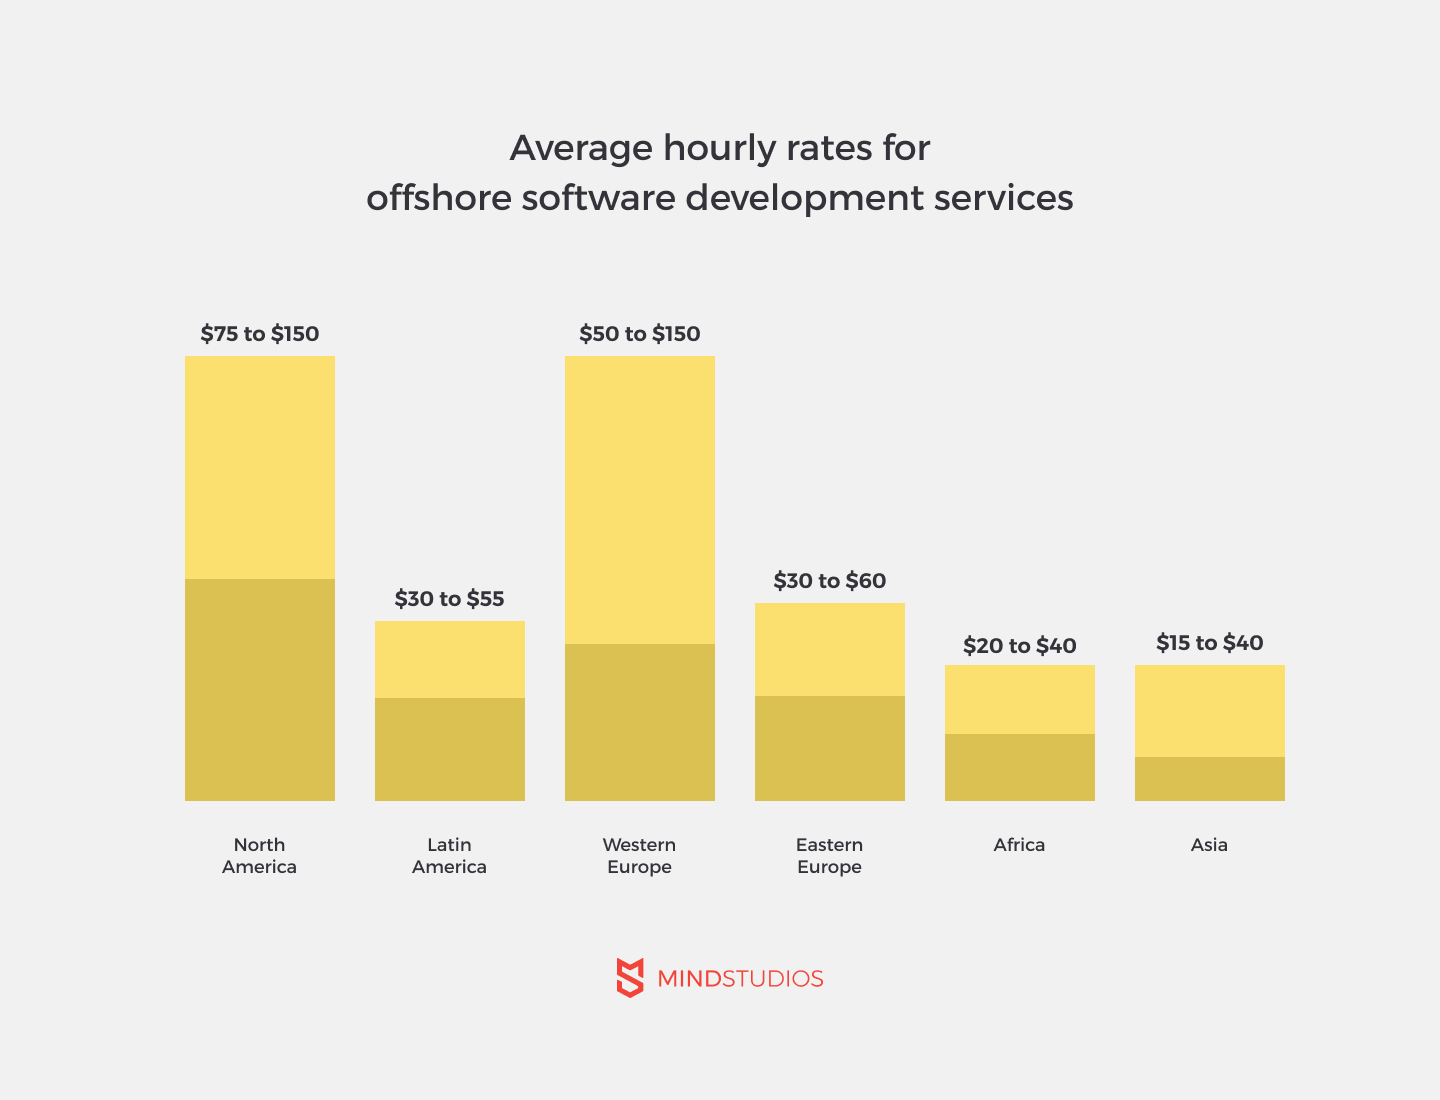 Average hourly rates for outsourcing software development services